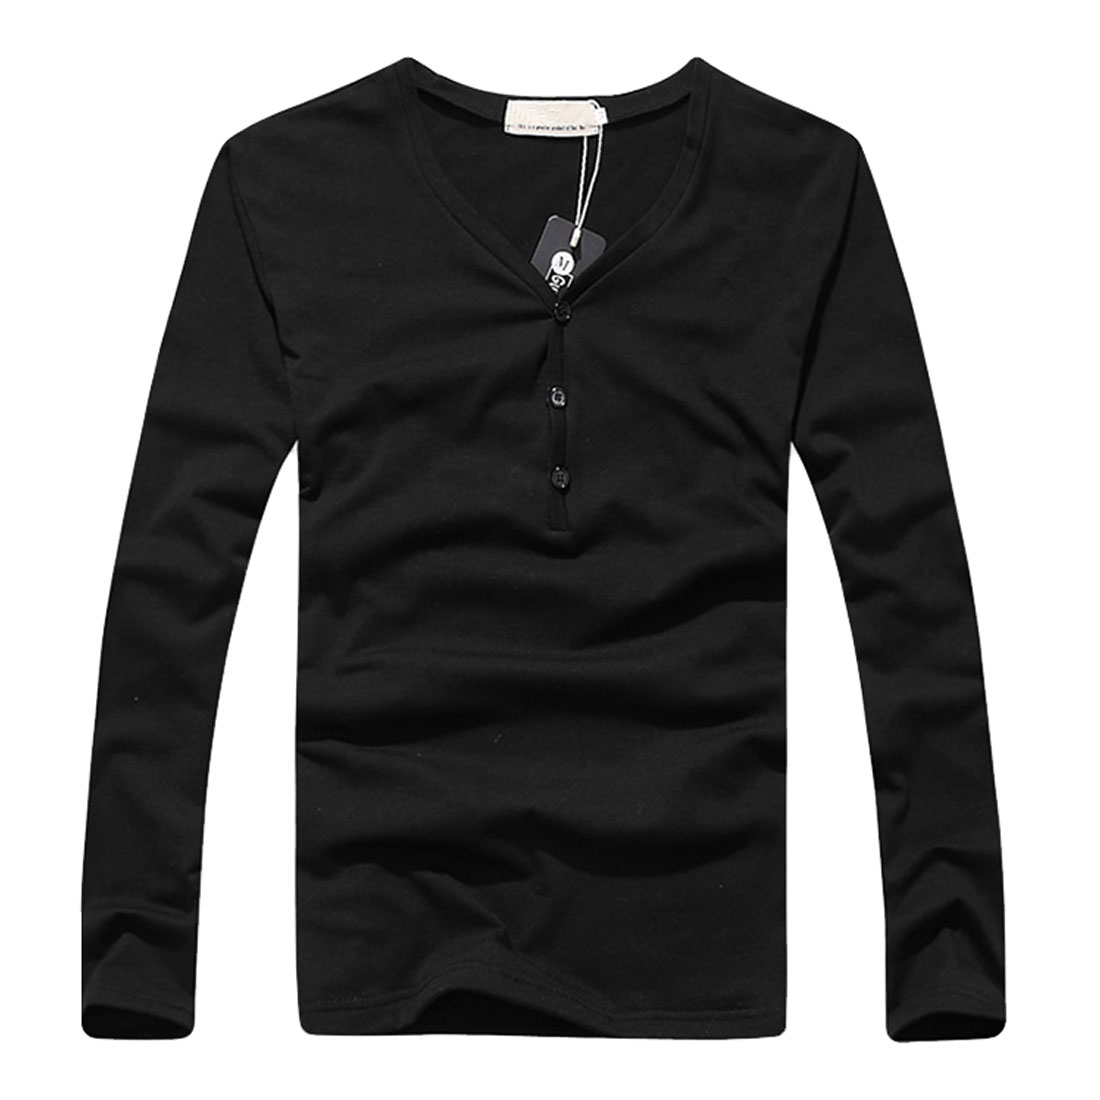 Men Fashion Black Long Sleeve Three Button Upper Leisure Tee Shirt XS